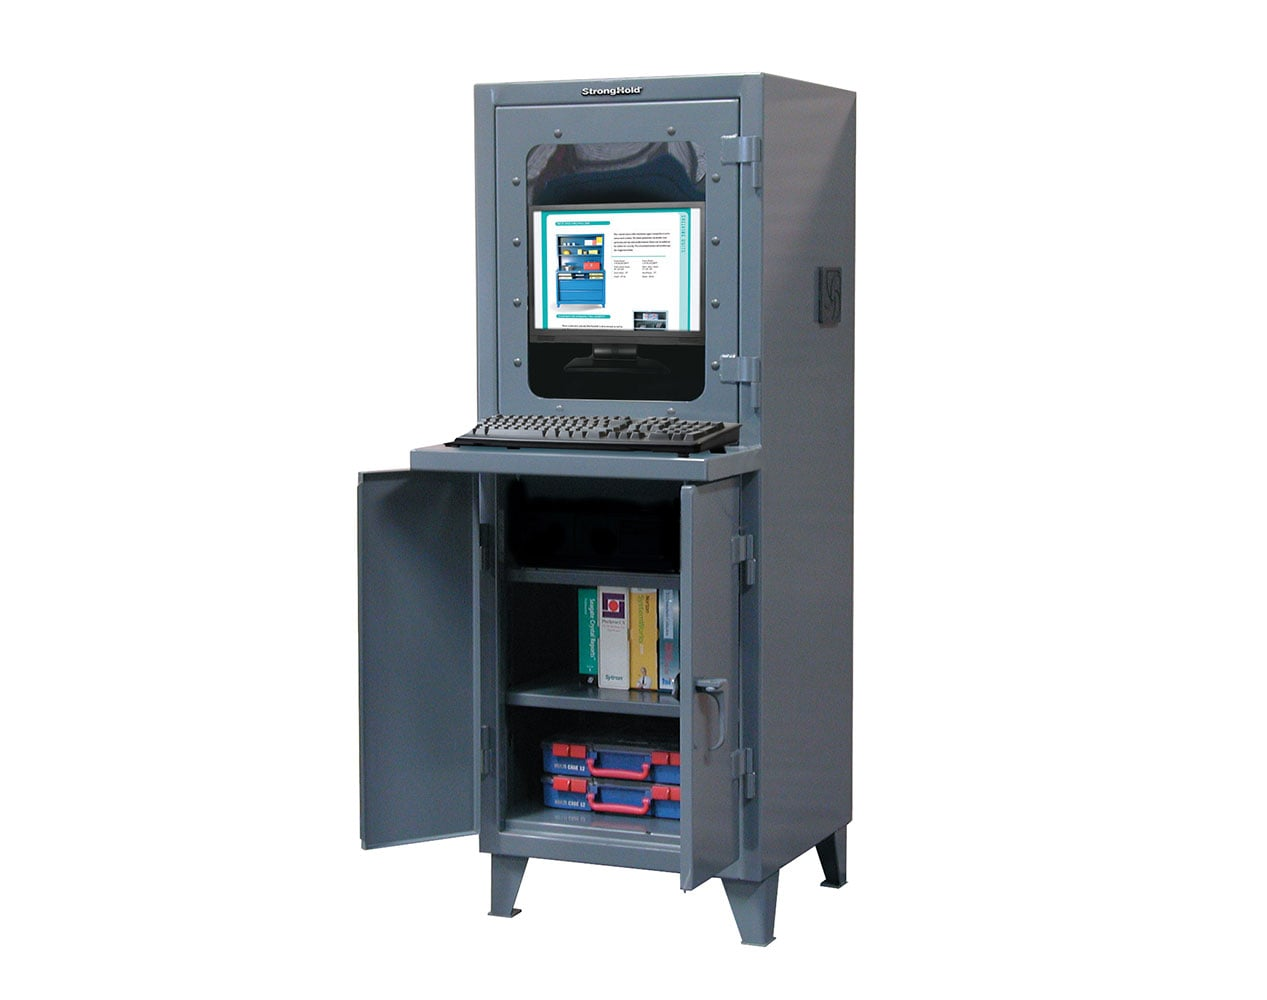 Extra Heavy Duty 12 GA Computer Cabinet with 2 Shelves – 26 In. W x 24 In. D x 72 In. H